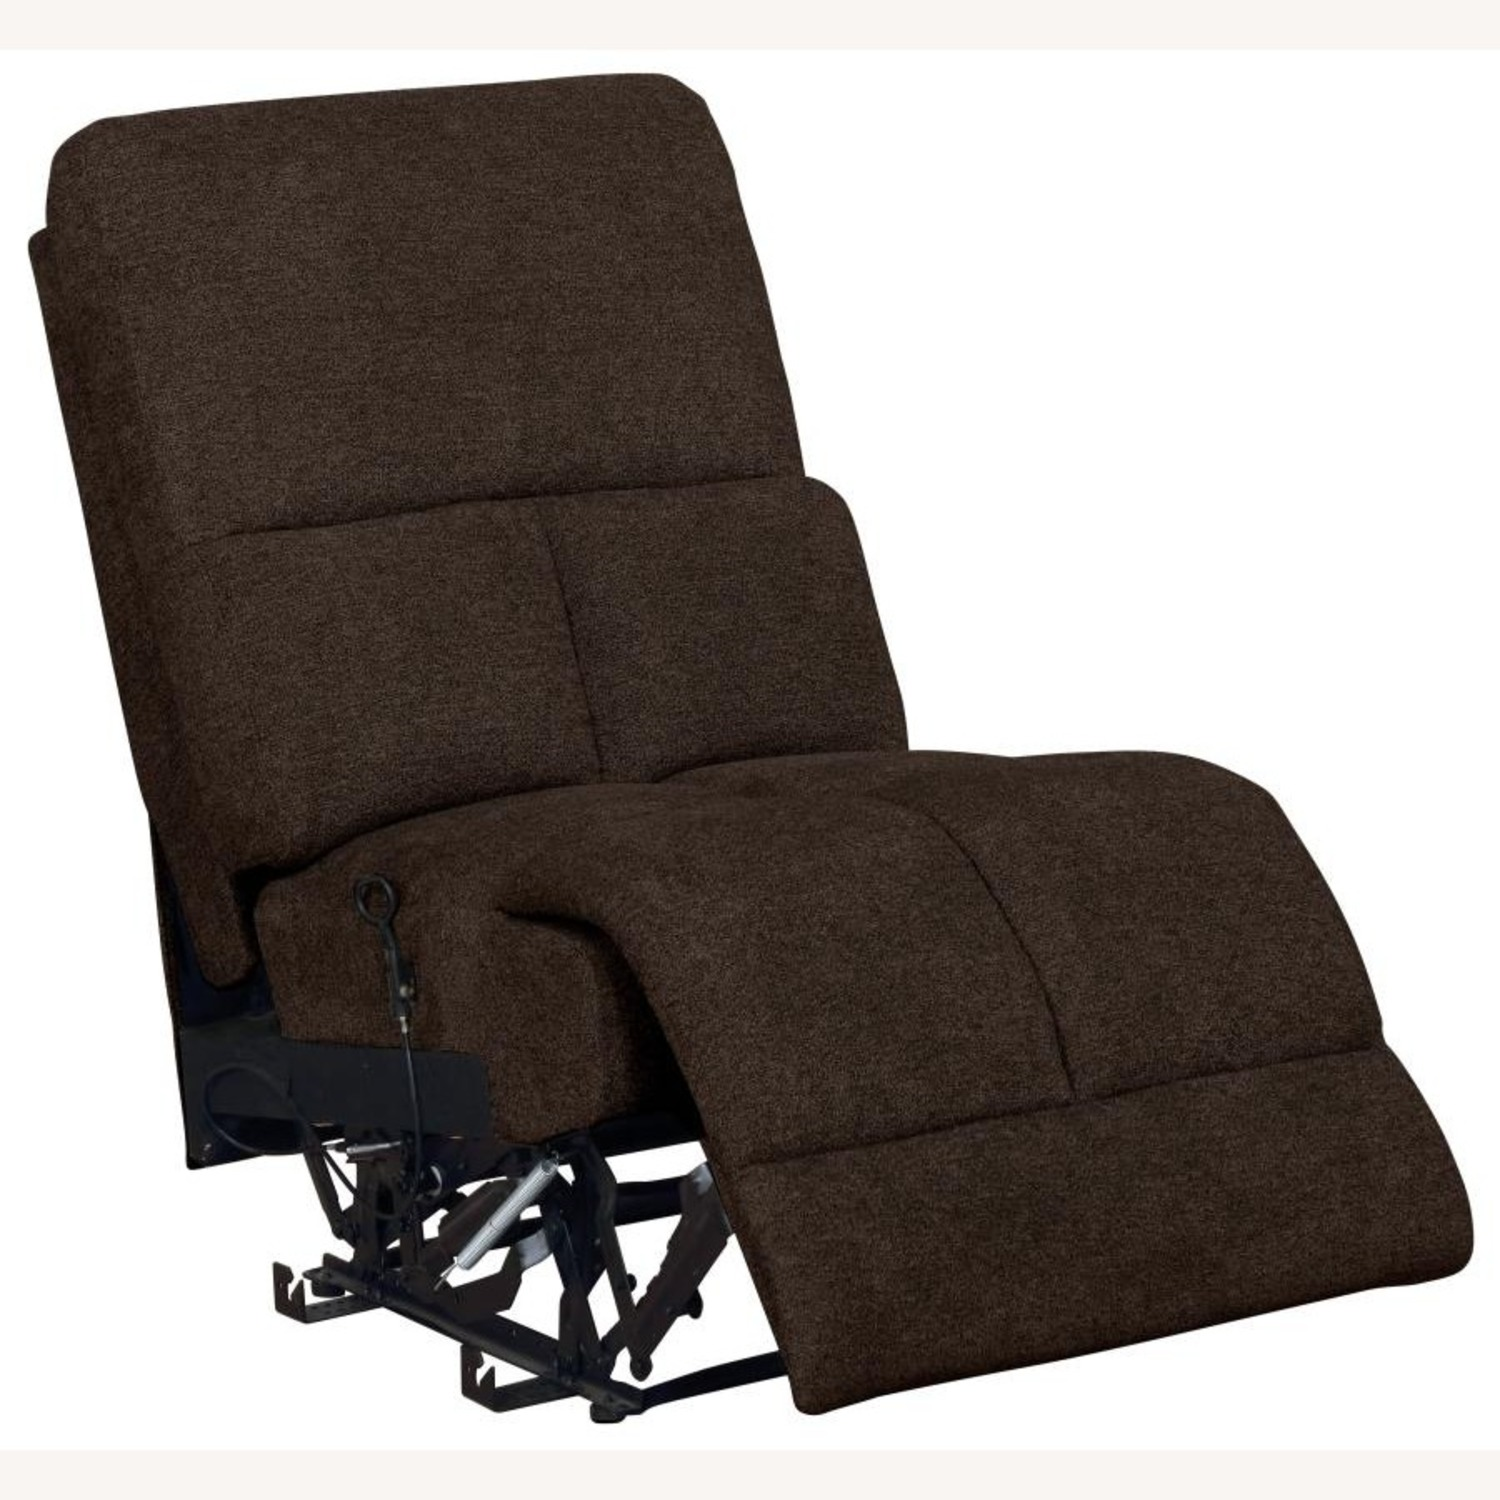 Motion Sectional In Brown Performance Fabric - image-3